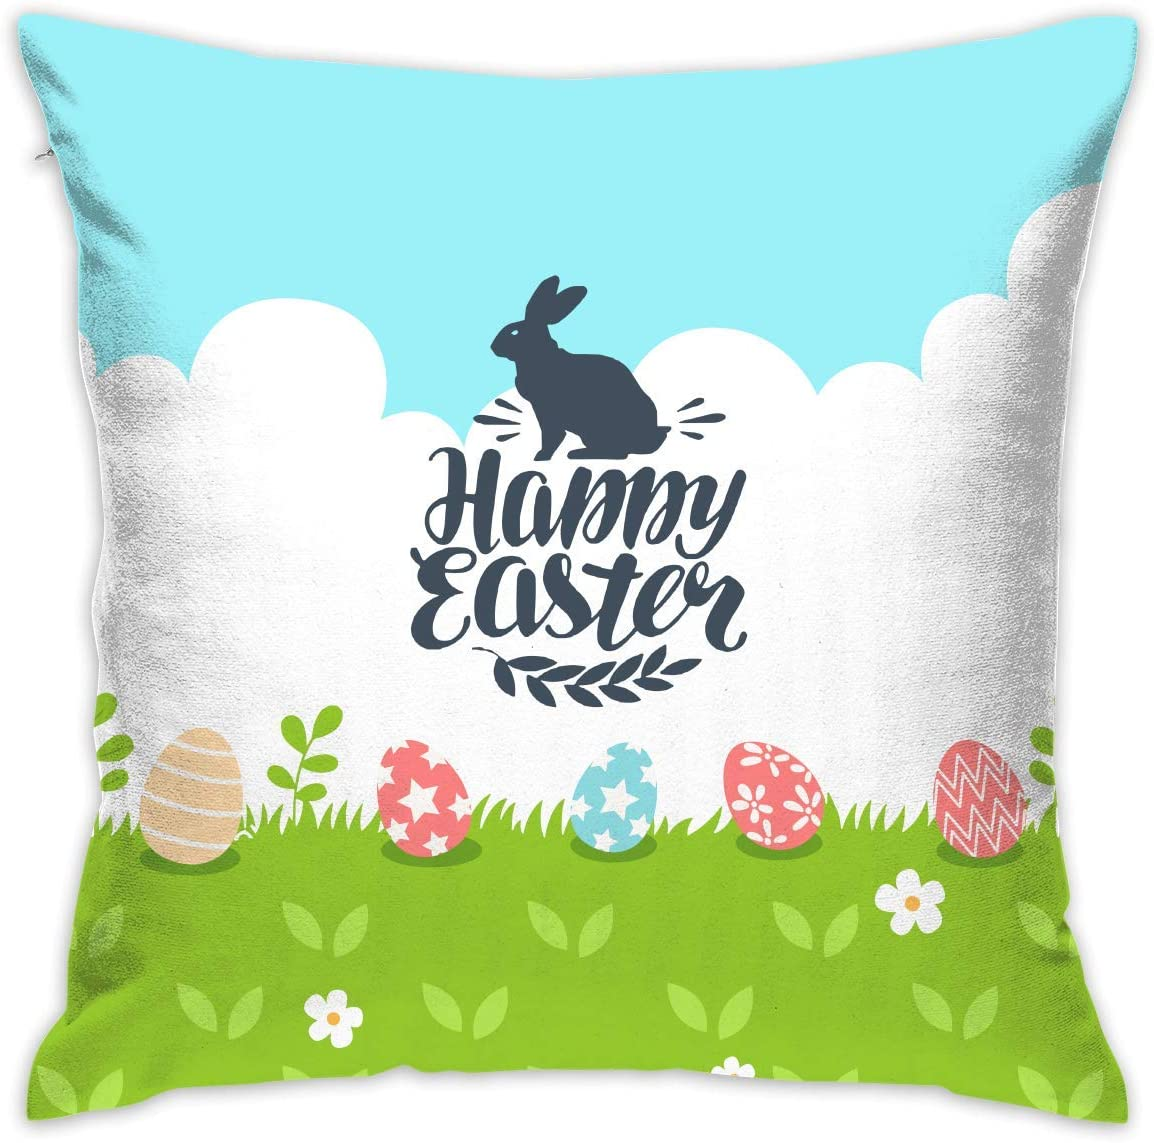 shizh Blue Sky Happy Easter Rabbit Egg Decor Throw Pillow Cover ...